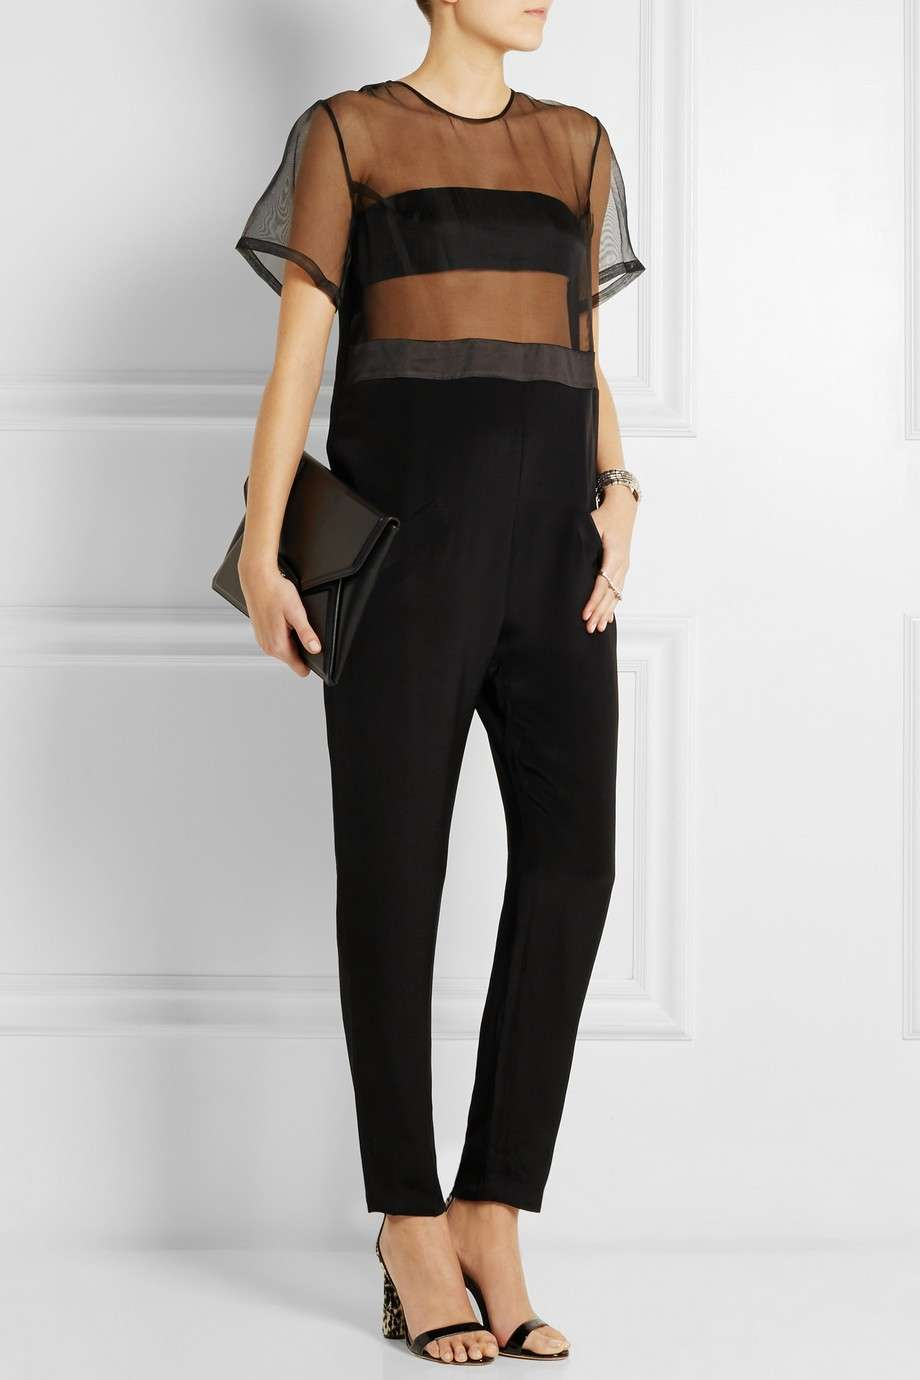 Jumpsuit Karla Spetic